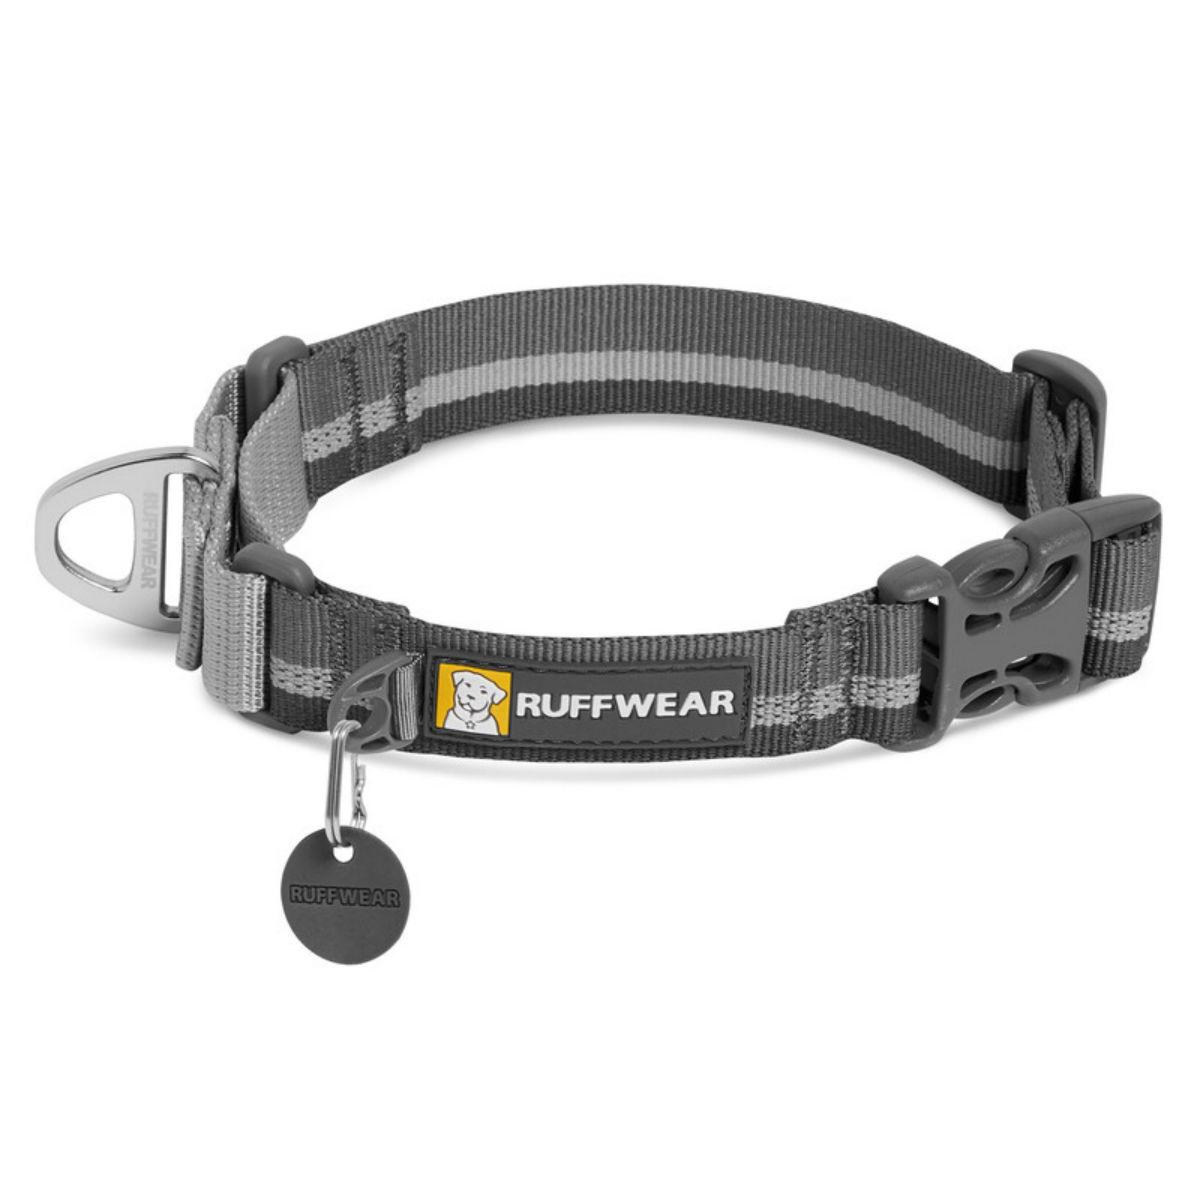 Web Reaction Dog Collar by RuffWear - Granite Gray